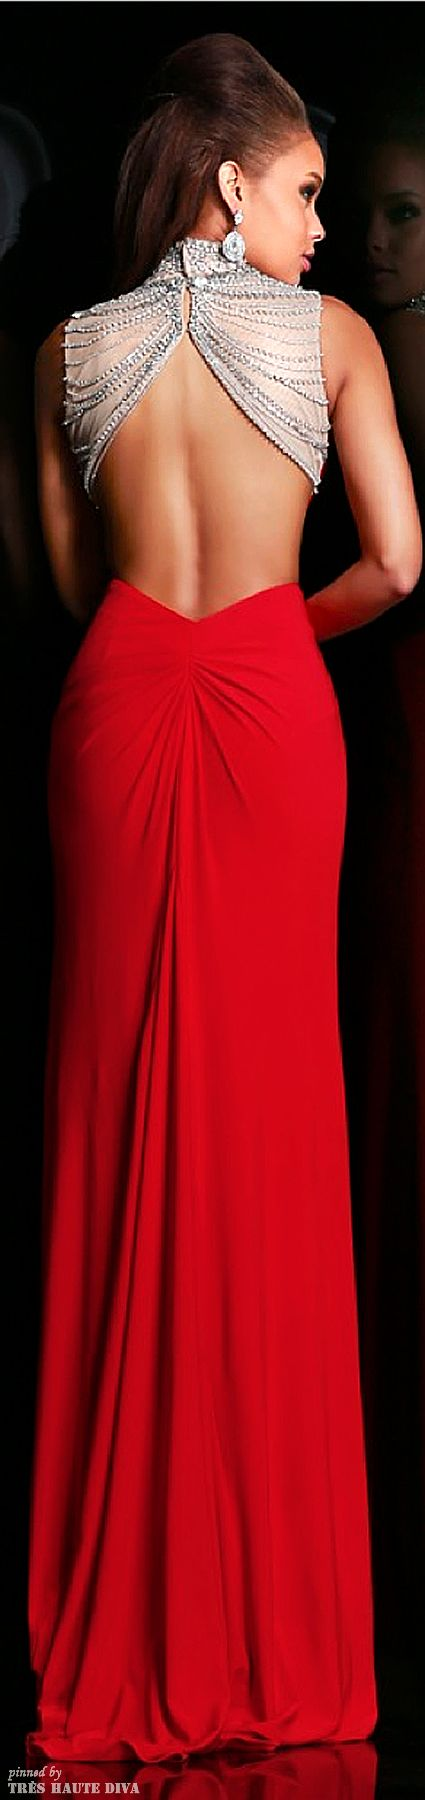 Sherri Hill Collection #red #gown #redgown